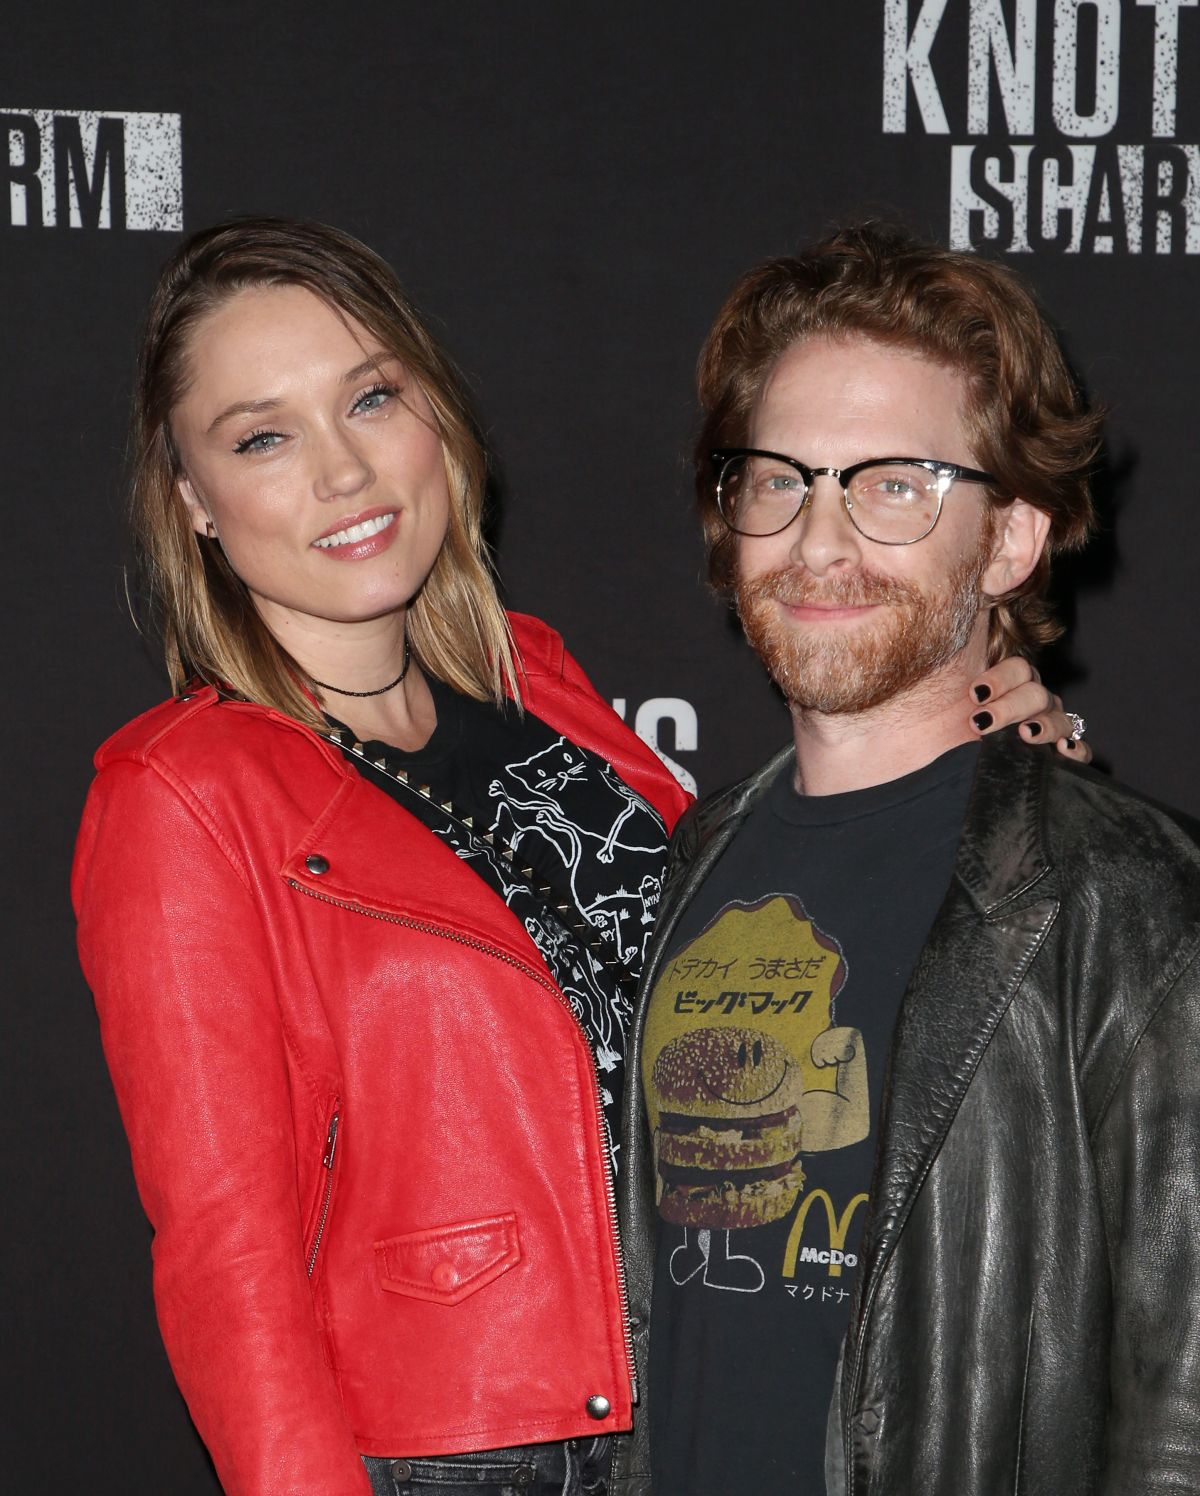 Clare grant knotts scary farm celebrity night in buena park - 2019 year